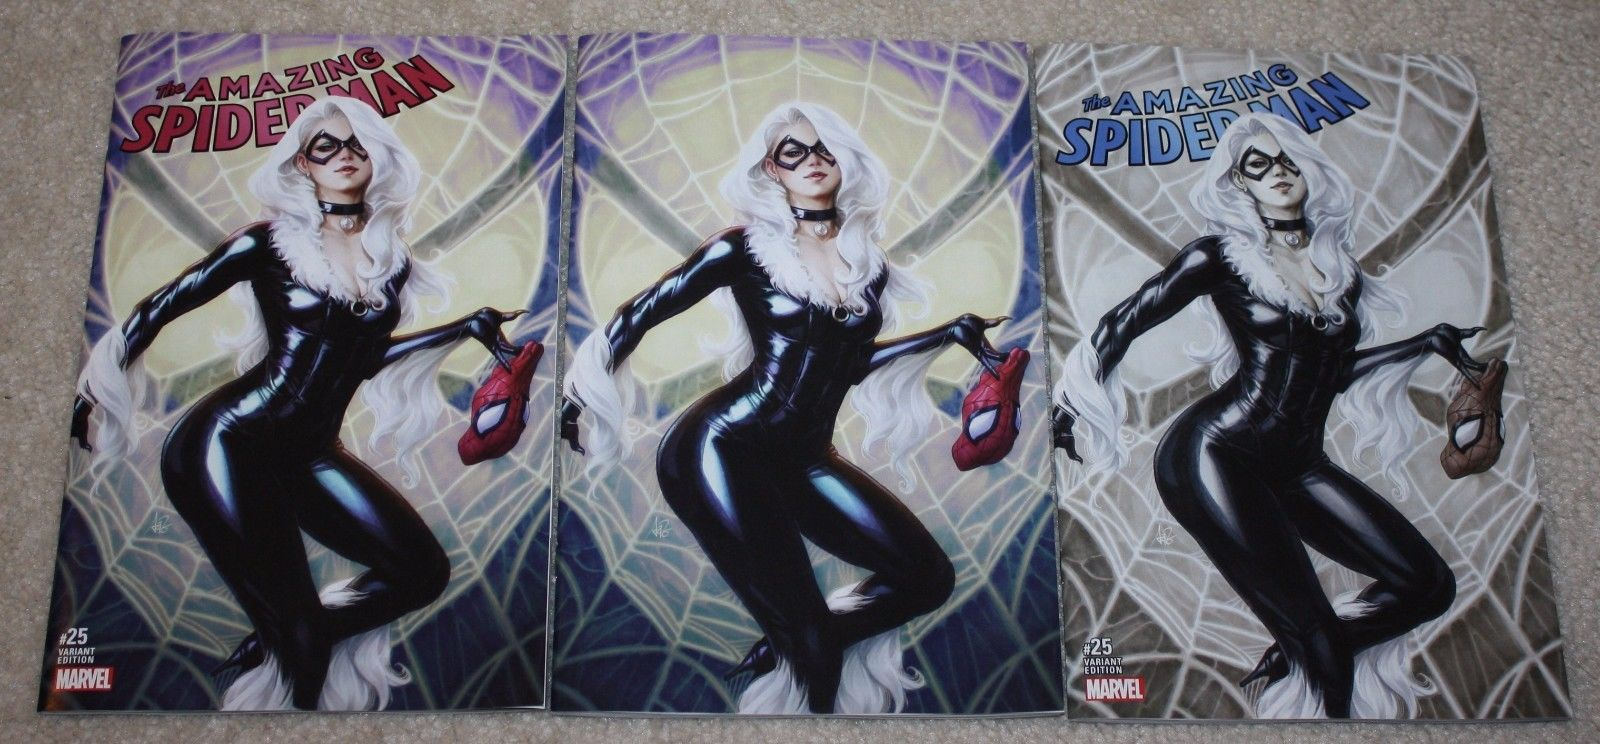 AMAZING SPIDER-MAN #25 ARTGERM BLACK CAT EXCLUSIVE VARIANTS